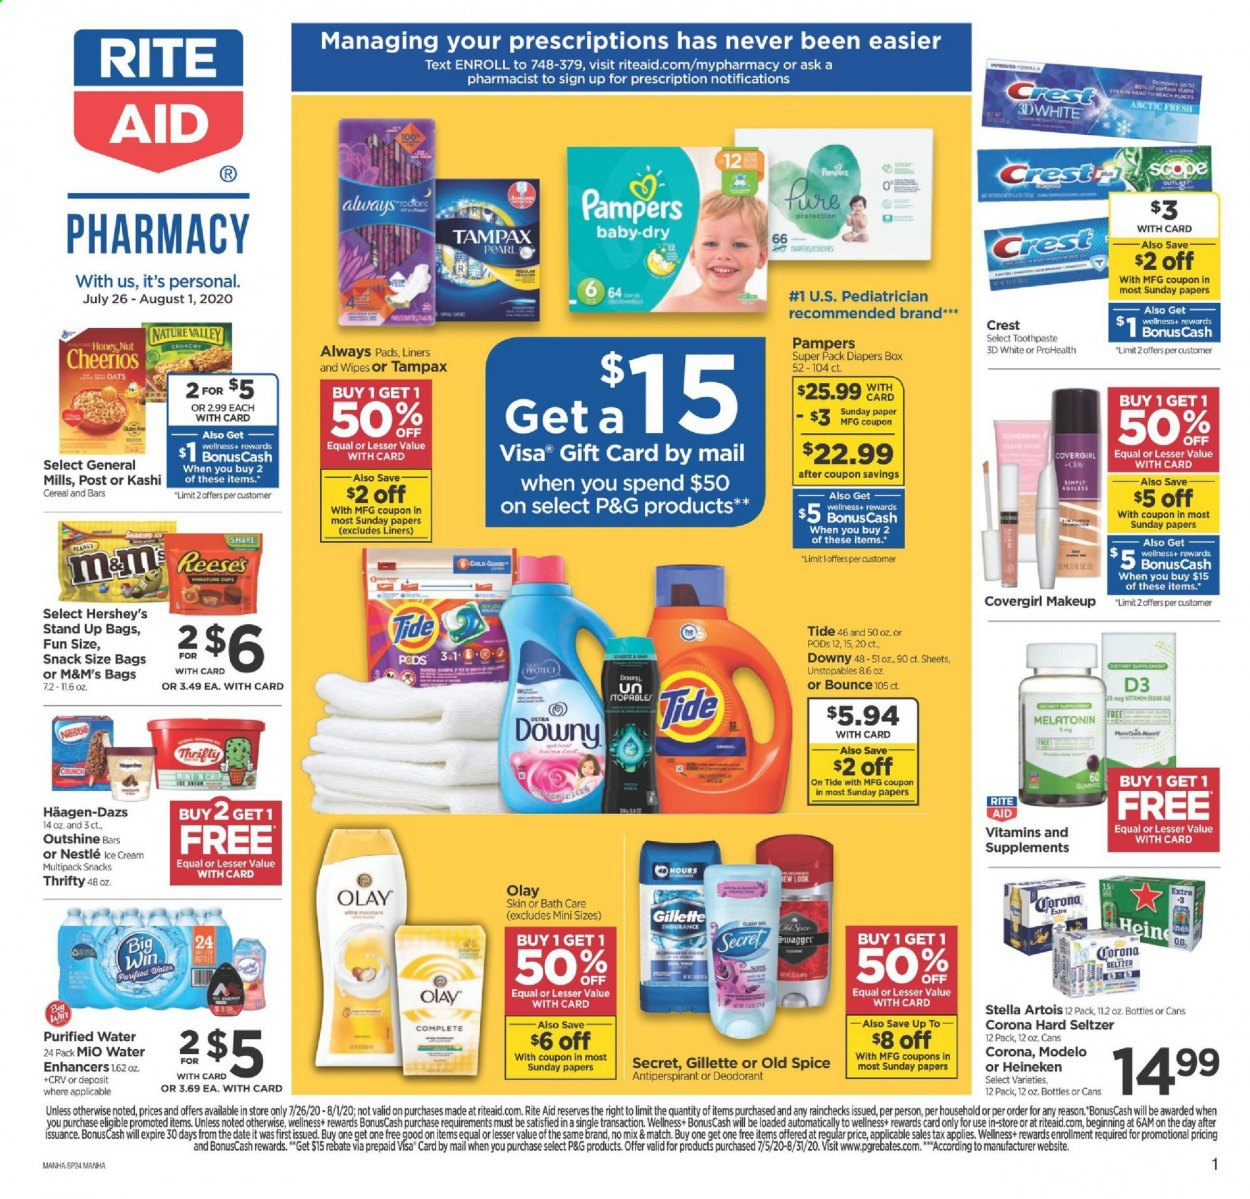 RITE AID Flyer - 07.26.2020 - 08.01.2020 - Sales products - bag, box, cereals, Downy, Gillette, makeup, Melatonin, moisture, Nestlé, secret, seltzer, Stella Artois, surface, Tampax, Tide, Unstopables, wipes, honey, cheerios, Pampers, peanuts, oats, Olay, Old Spice, toothpaste, snack, corona, heineken, purified water, cream, diapers, M&M's, Always Pads. Page 1.